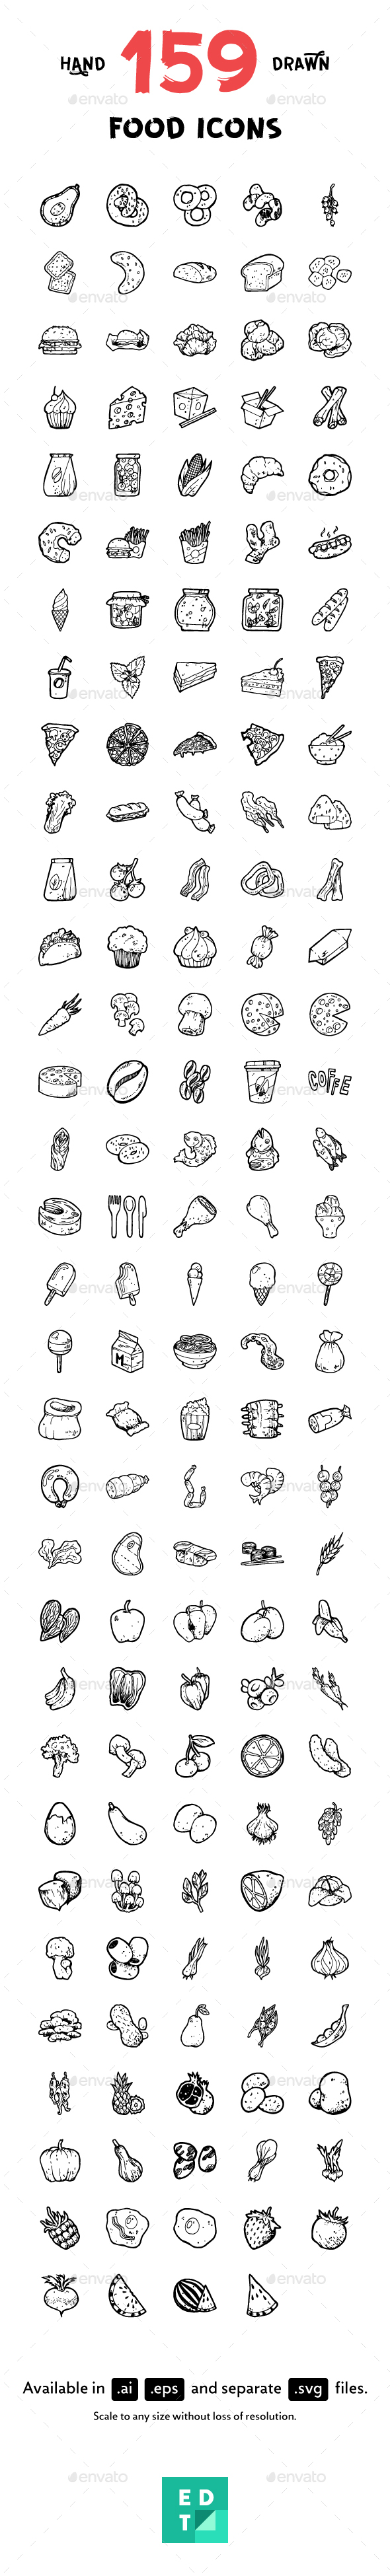 159 Food Hand-Drawn Icons - Food Objects